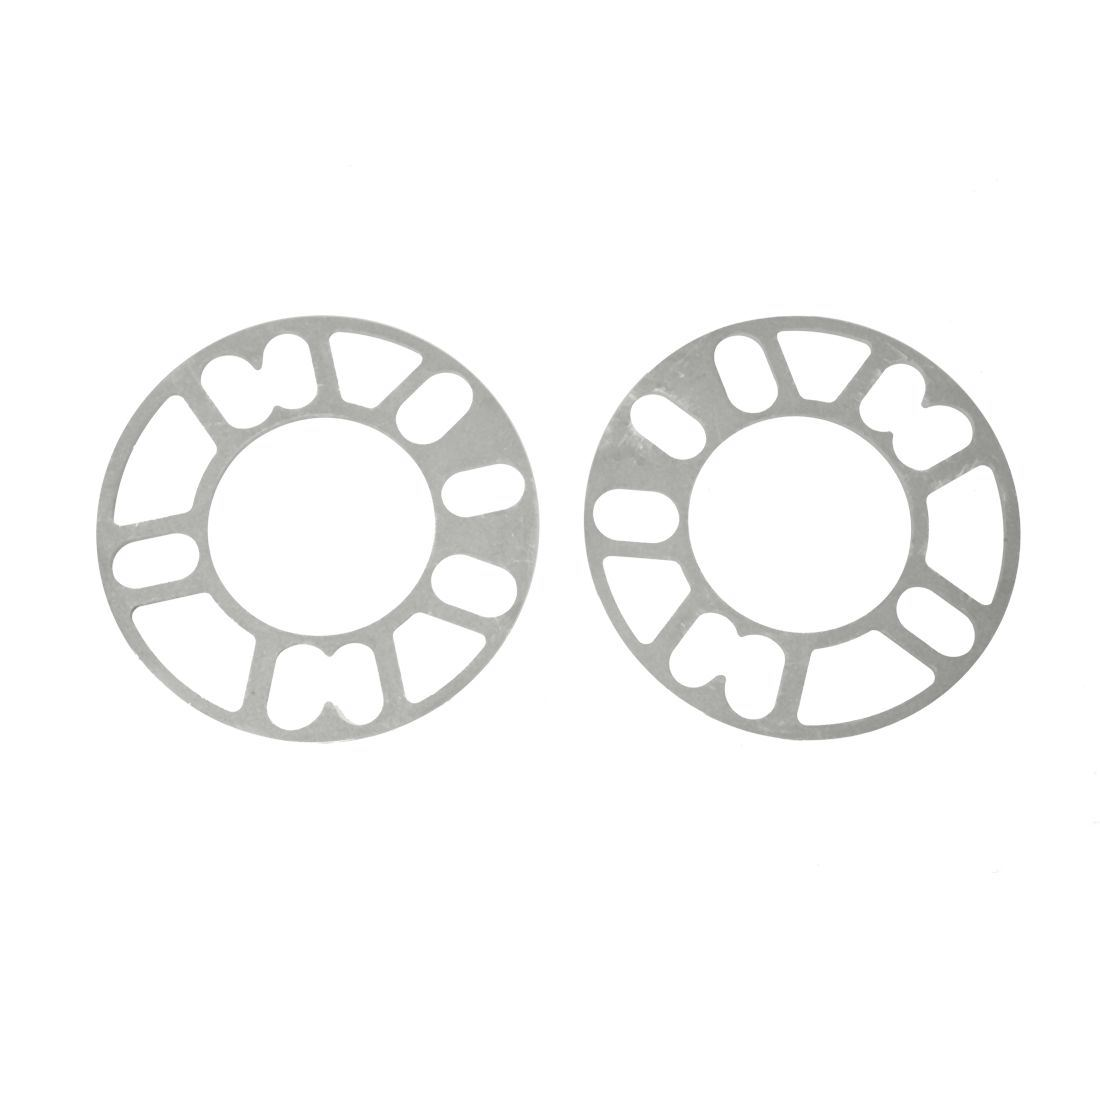 2PCS Aluminum Alloy 4 and 5 Lug 5mm Wheel Spacer Gasket for Auto Vehicle